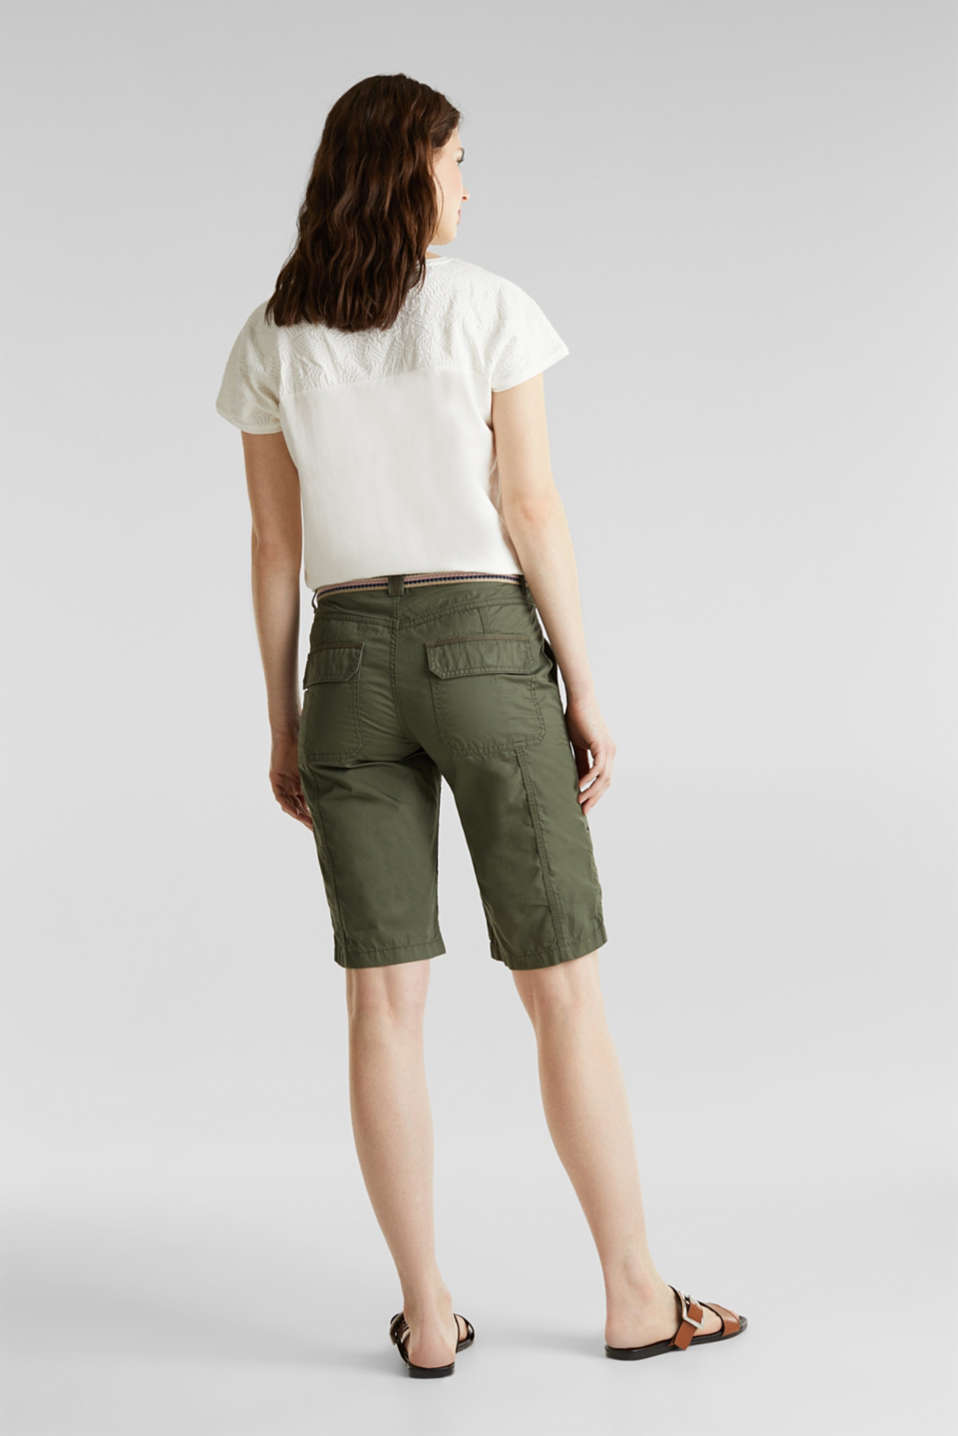 PLAY cotton shorts, KHAKI GREEN, detail image number 3